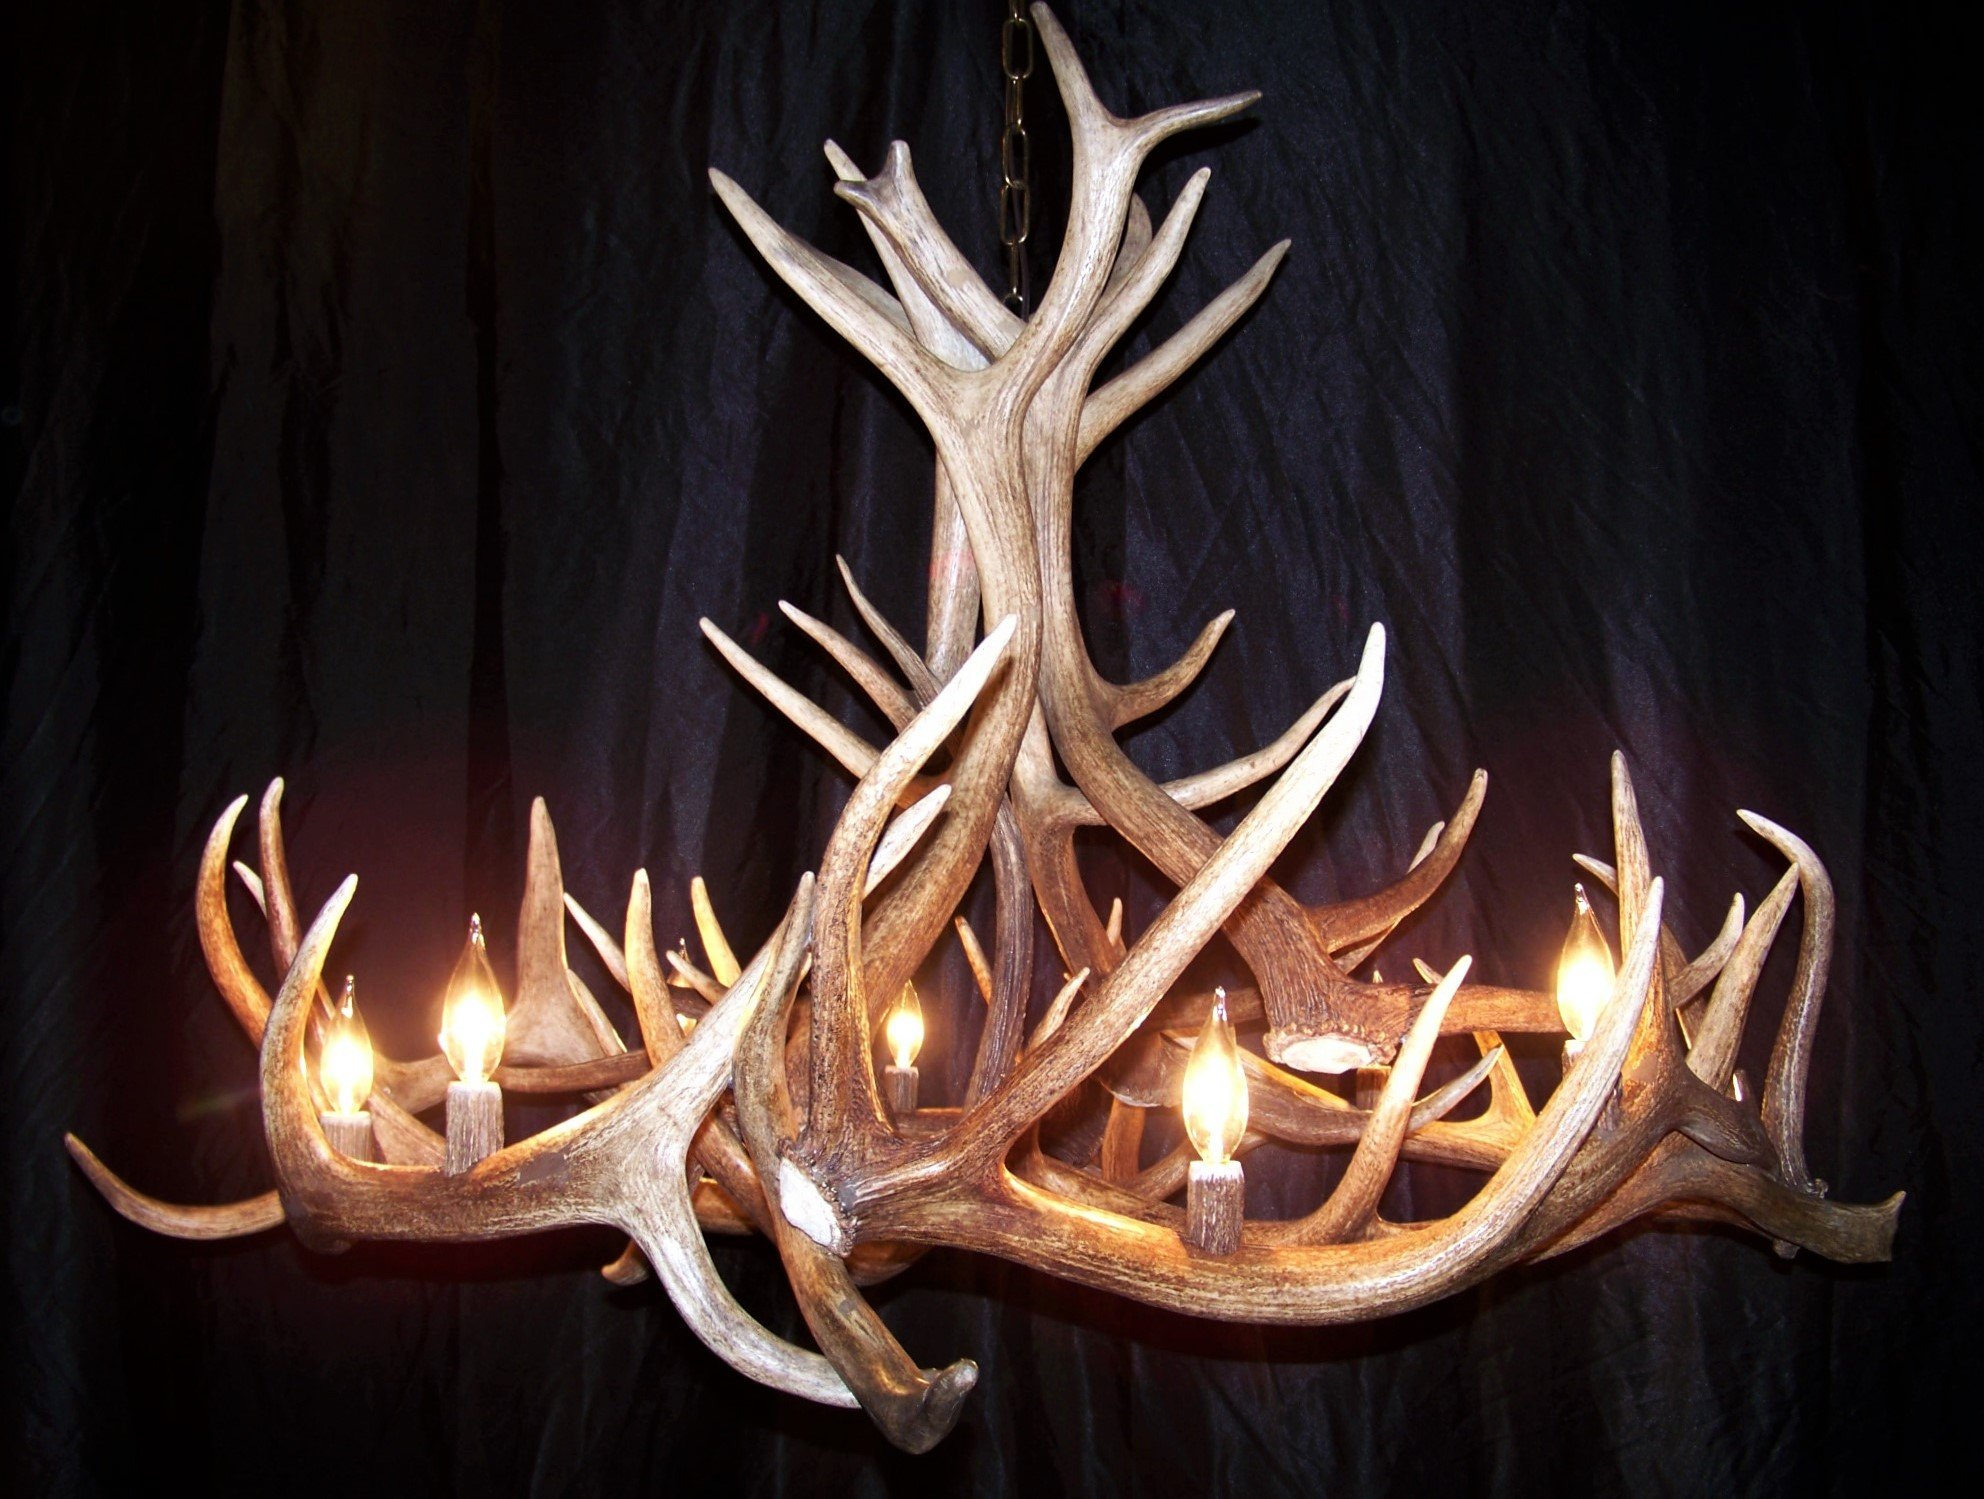 REAL ELK ANTLER CHANDELIER, 8 LIGHTS, SHED ANTLER ART, ELK ANTLER COVERED SOCKETS HANDMADE, LARGE, 45'' WIDE x 30'' TALL